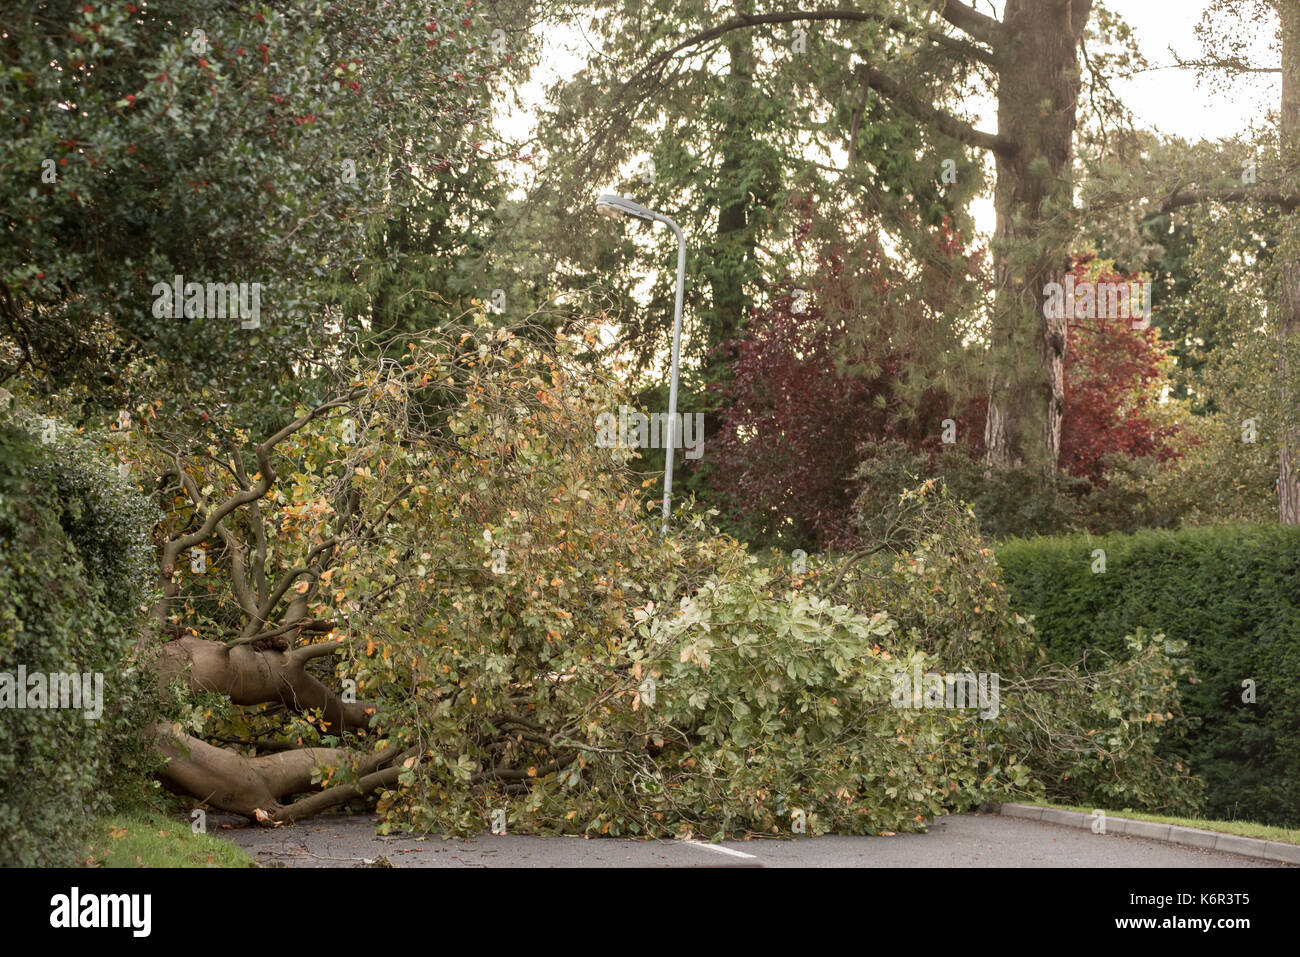 Cardiff, UK. 13th Sep, 2017. 17-09-13 . Cardiff, Wales, UK. Storm Aileen, the first named storm of the 2017-2018 season downs trees across the Welsh capital, Cardiff causing roads to close as here in Mill Lane, Lisvane. Picture Credit: IAN HOMER/Alamy Live News - Stock Image